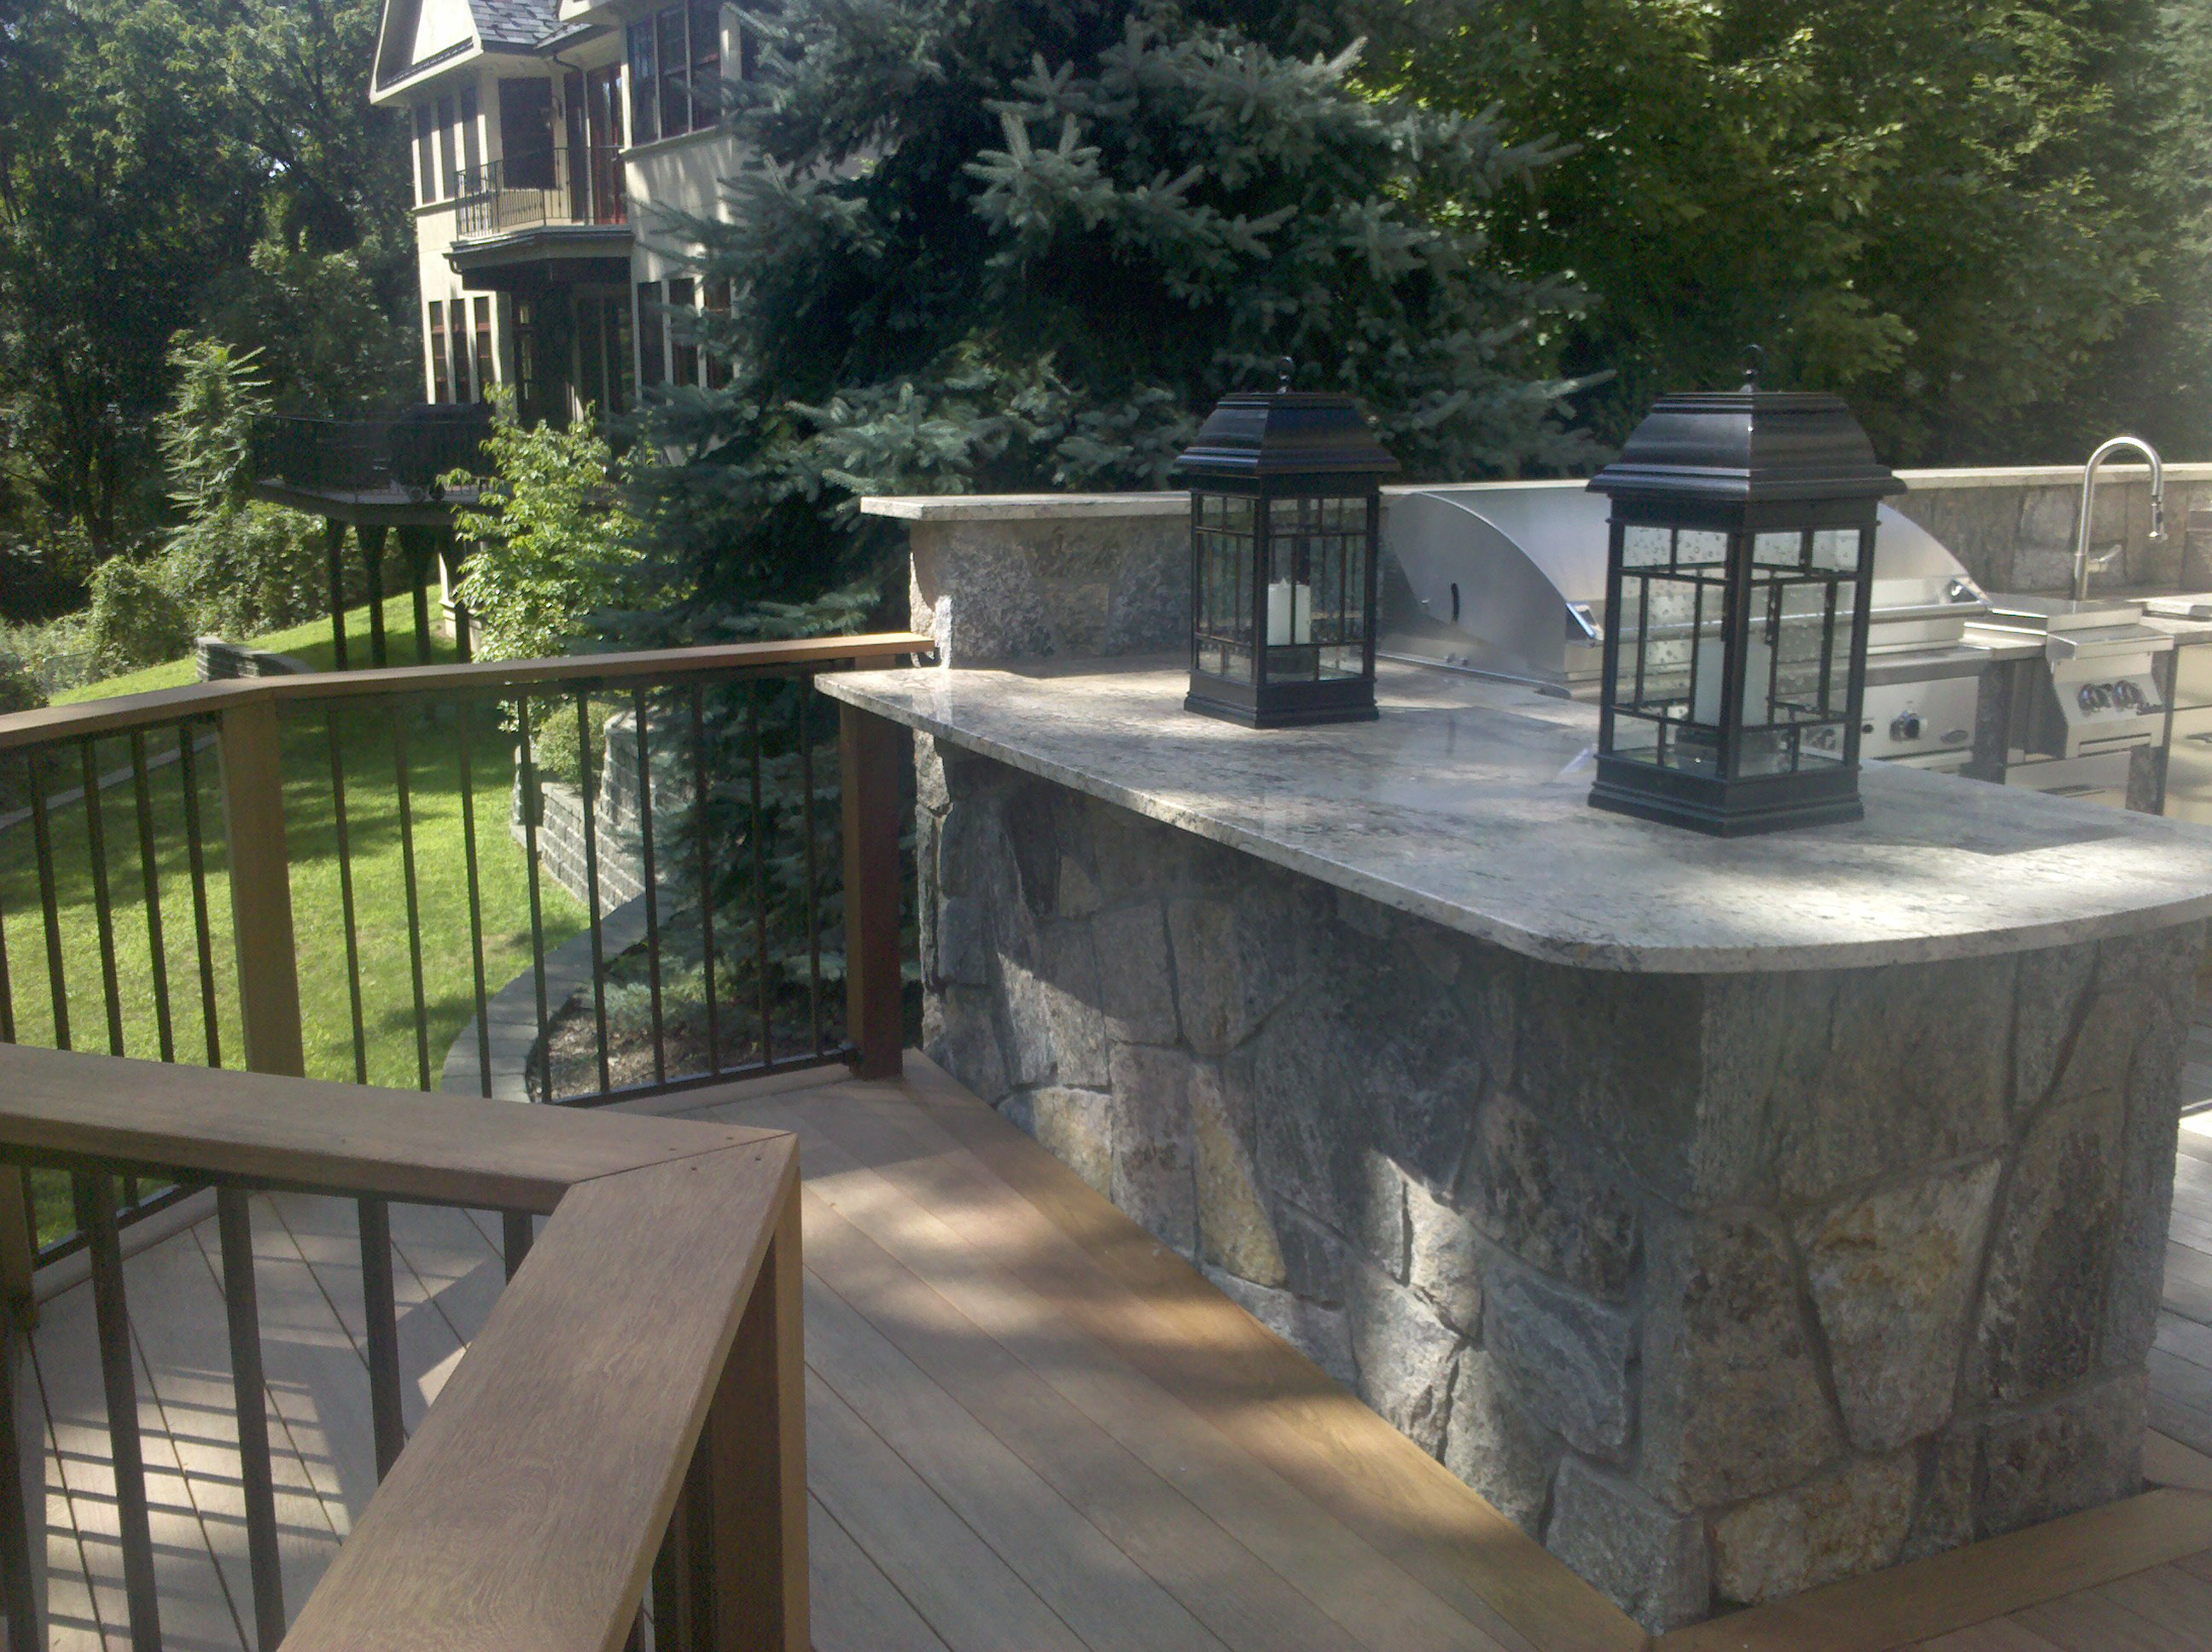 Preferred Properties Landscaping Builds This Outdoor Kitchen On The Second Floor Elevated